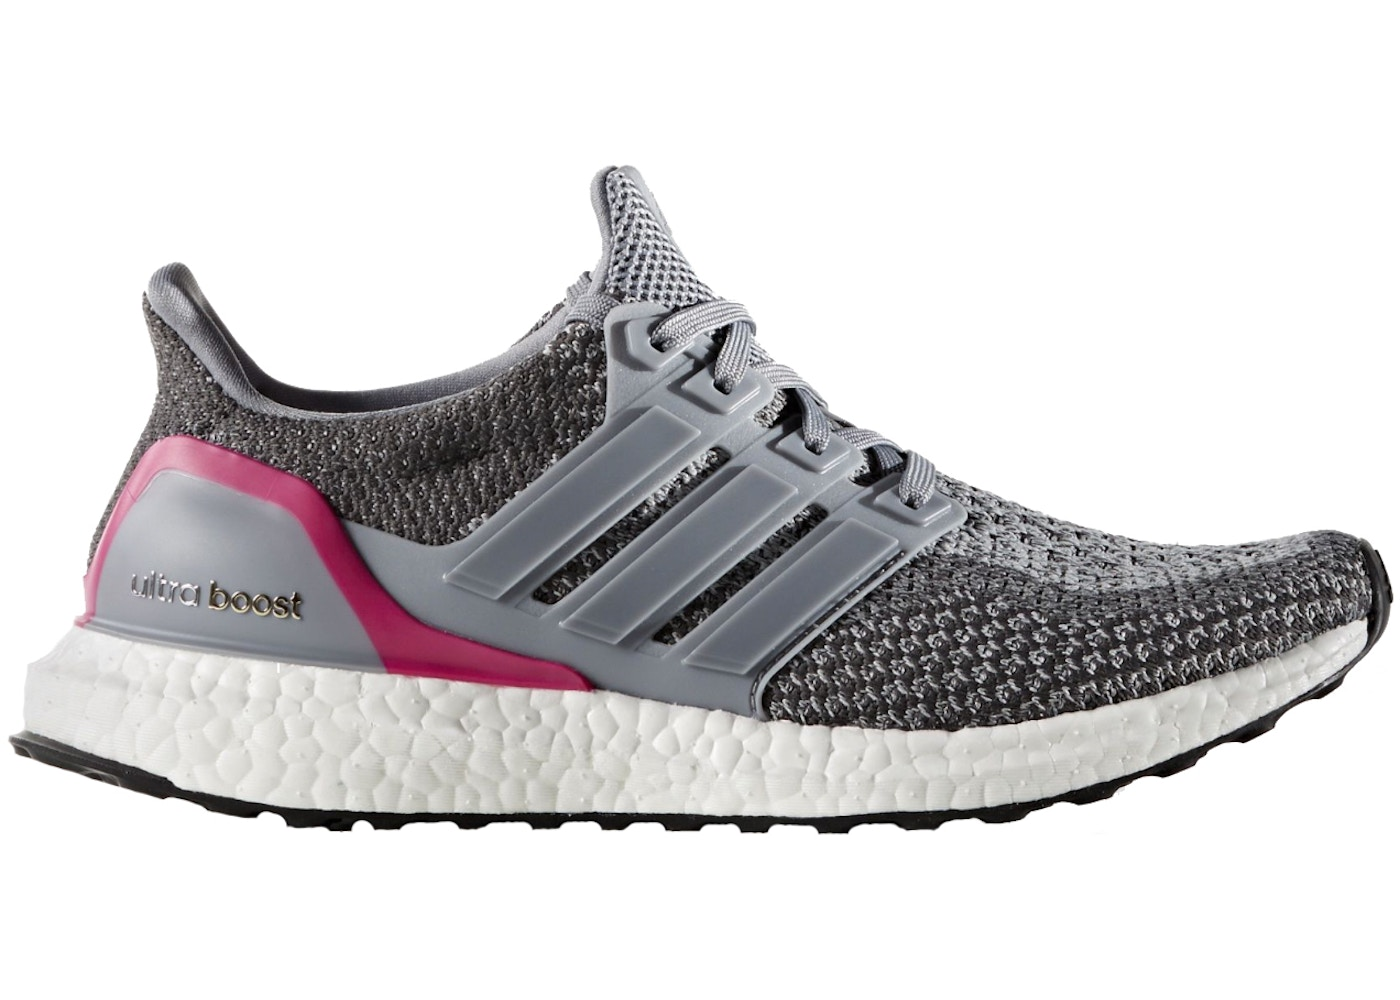 493dacda2 adidas Ultra Boost 2.0 Shocking Pink (W) - AQ5936